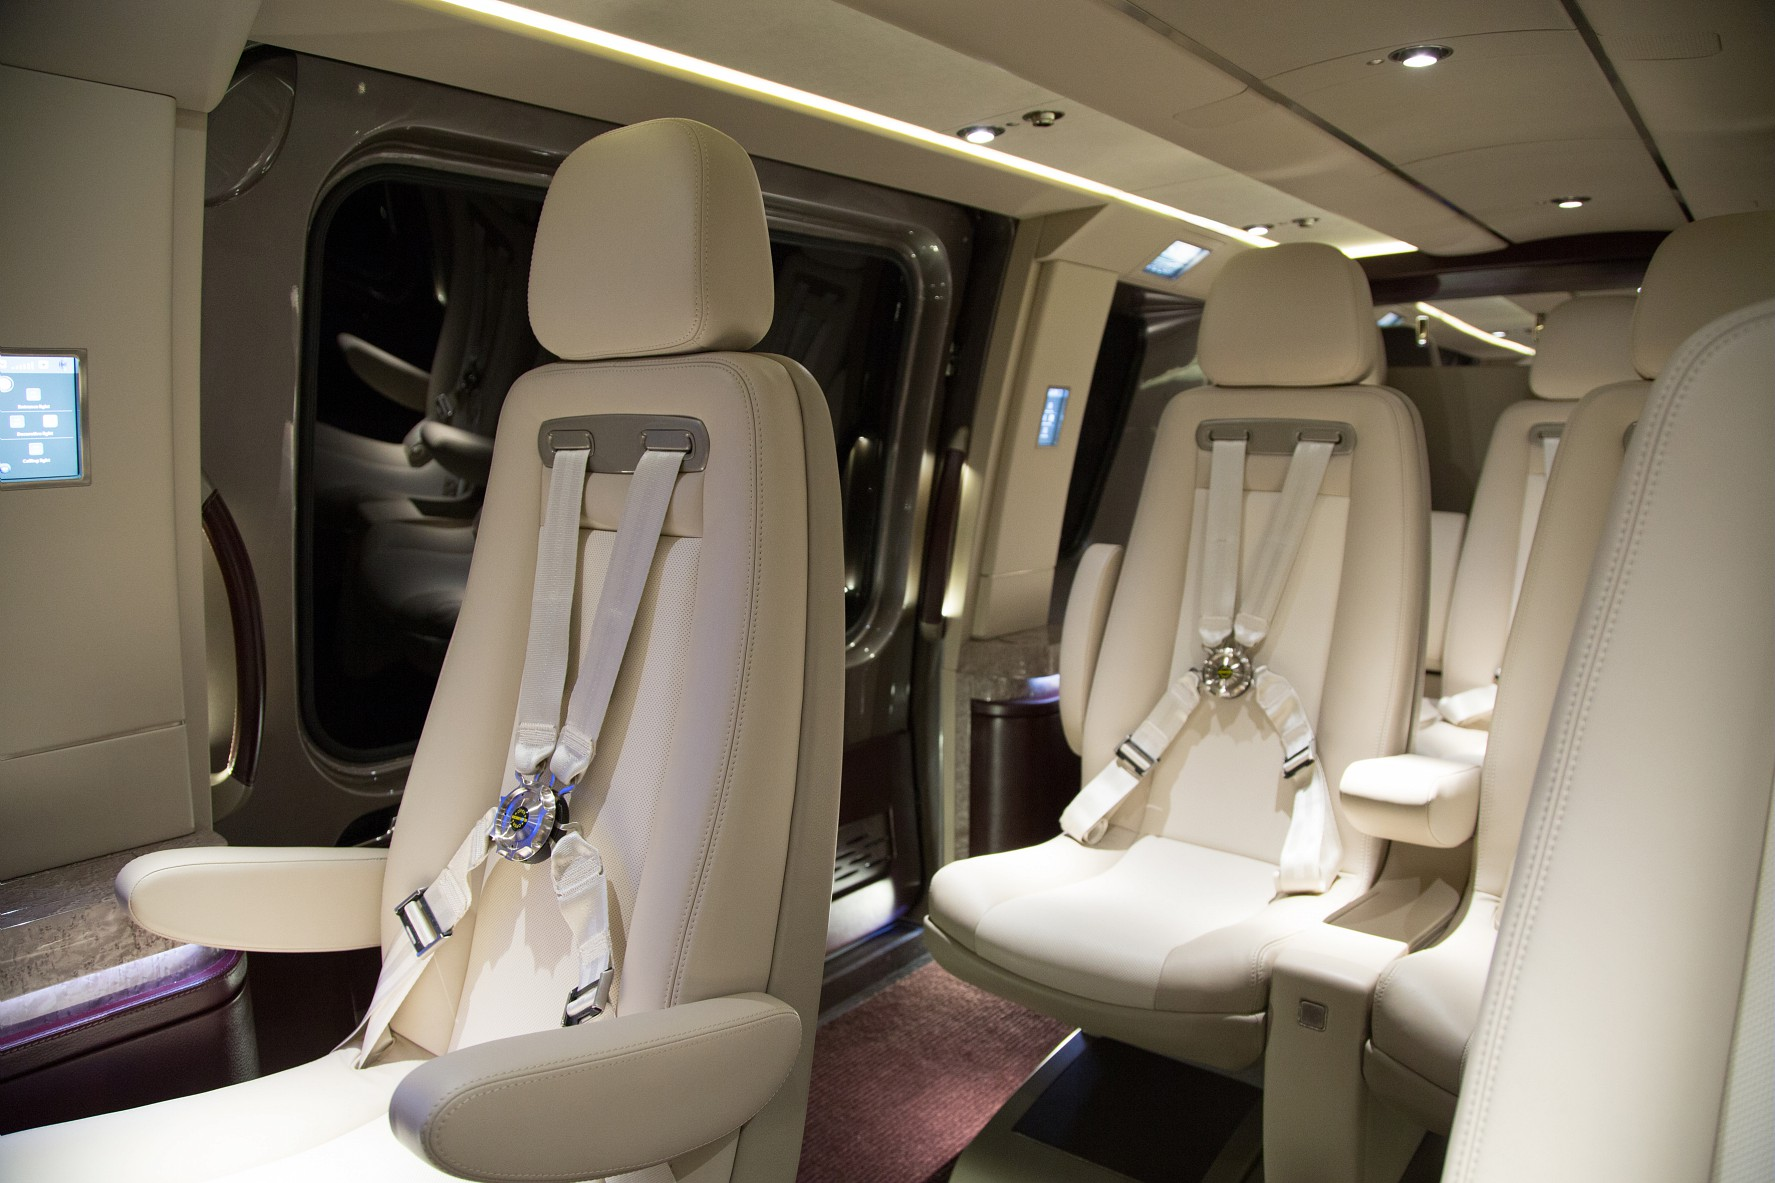 ... special touch of elegance and luxury to the helicopters' interiors